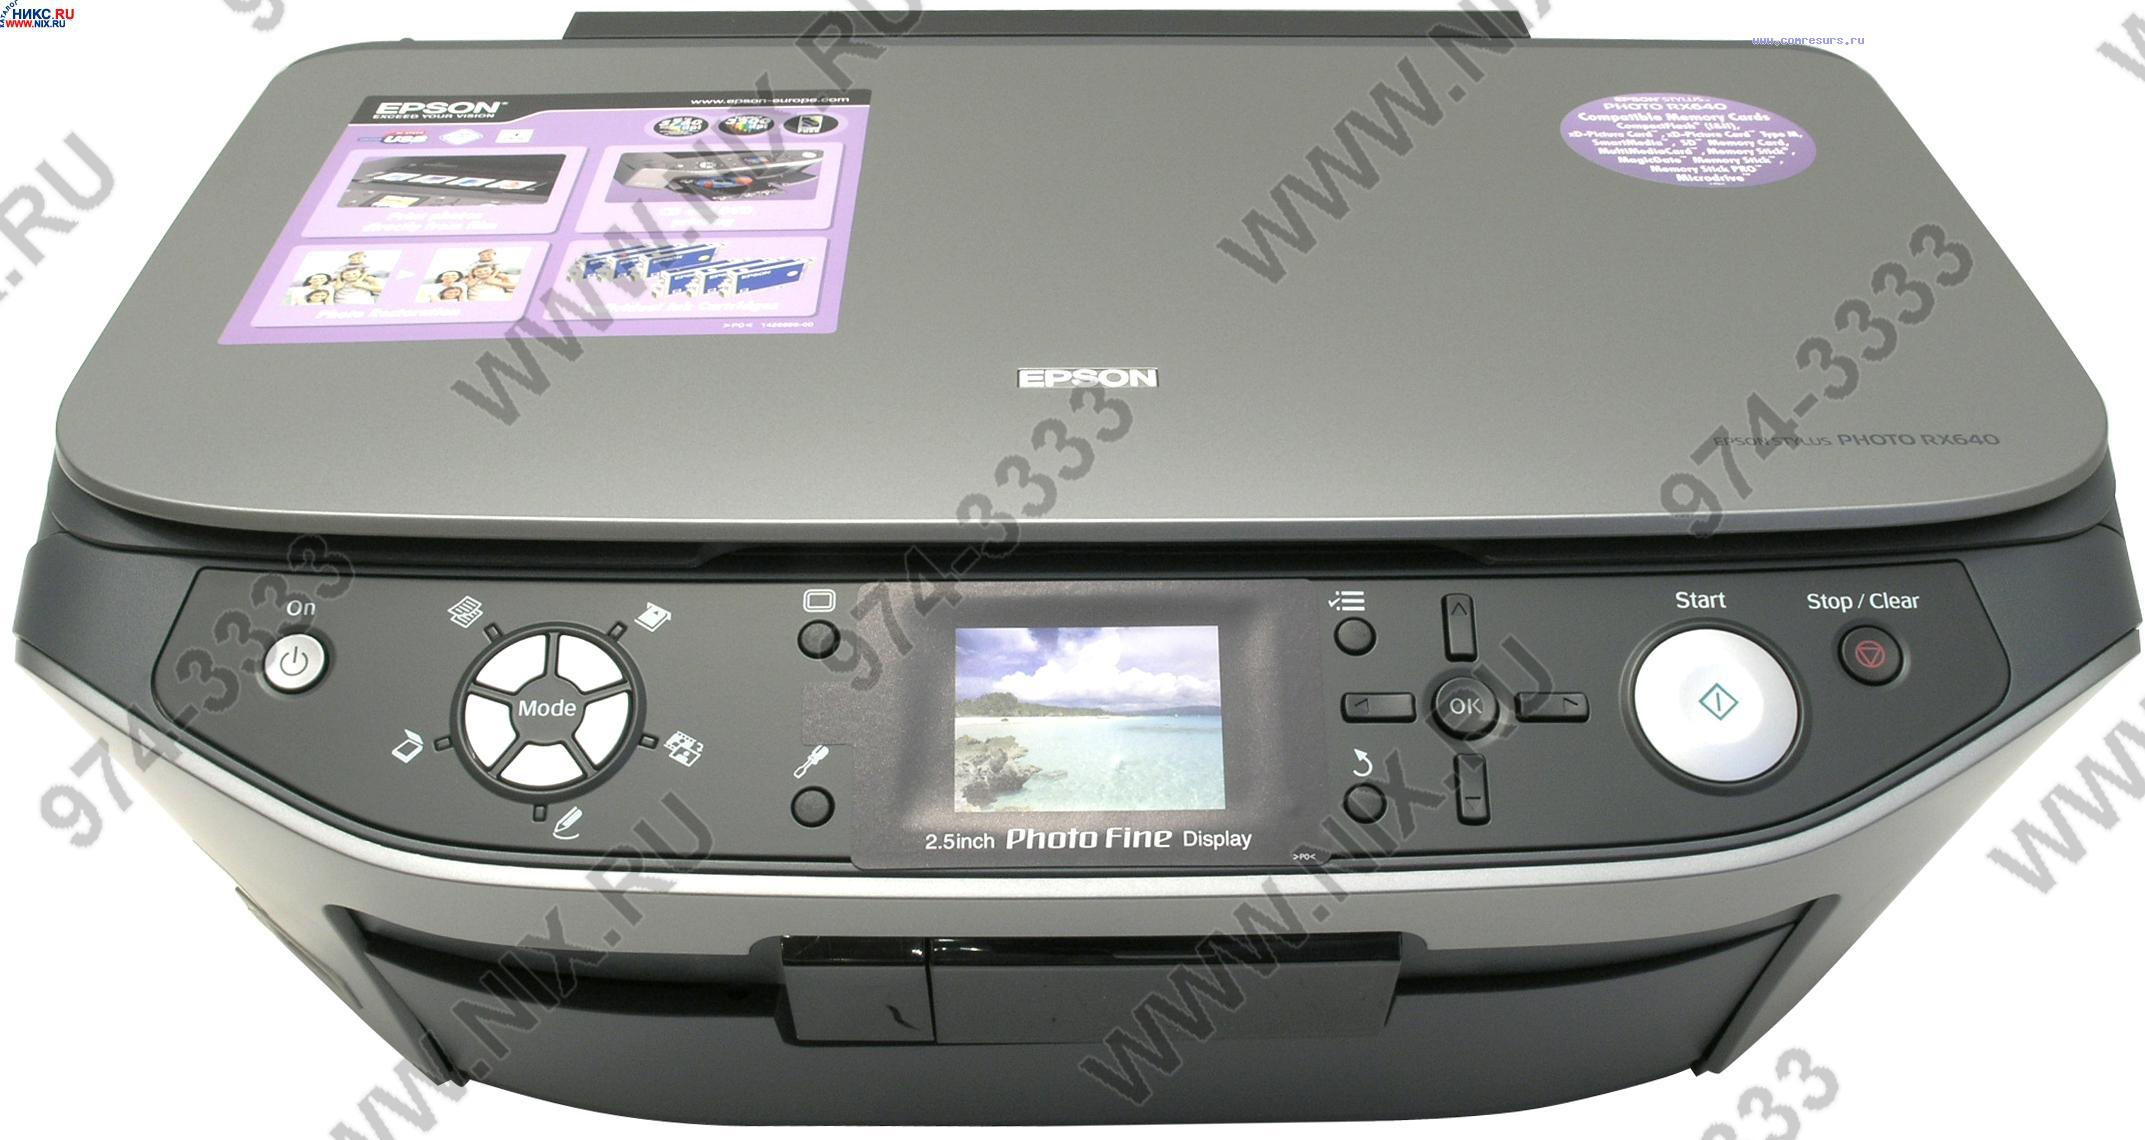 Epson Stylus Photo RX640 All in one printer - Pocket-lint Epson stylus photo rx640